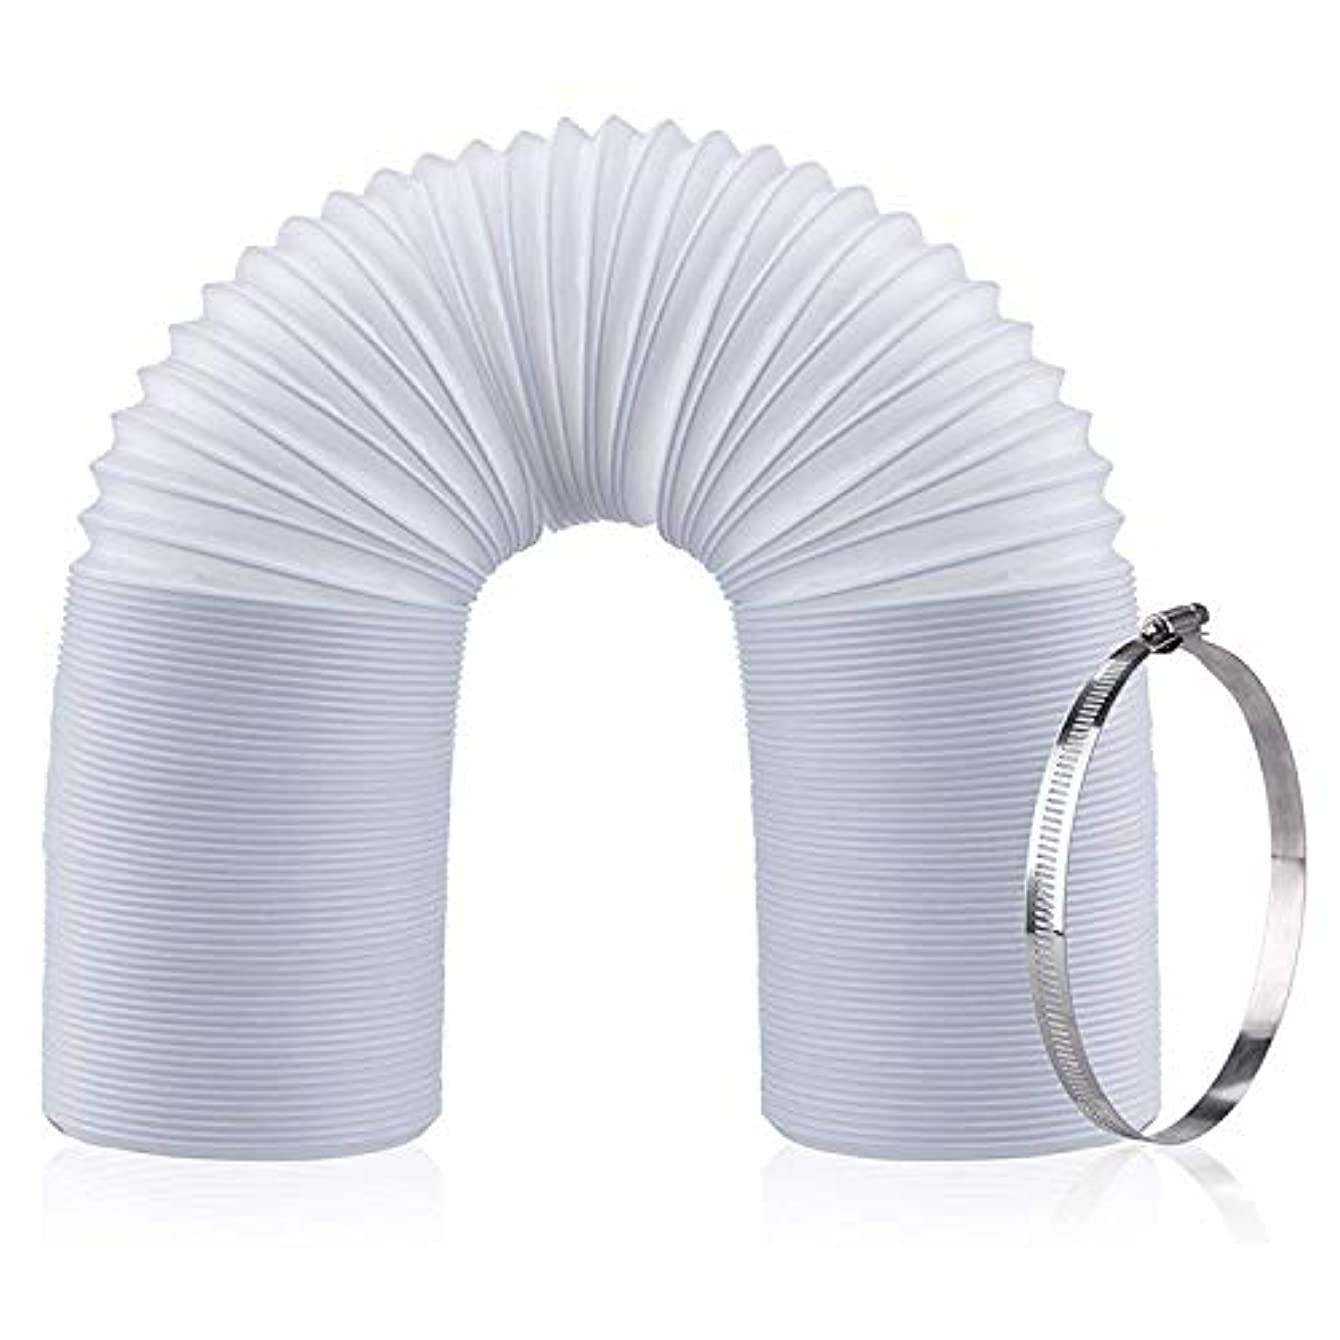 Portable Air Conditioner Exhaust Hose   Clockwise/Counter Clockwise Threads   5 Inch Diameter   59 Inch Length